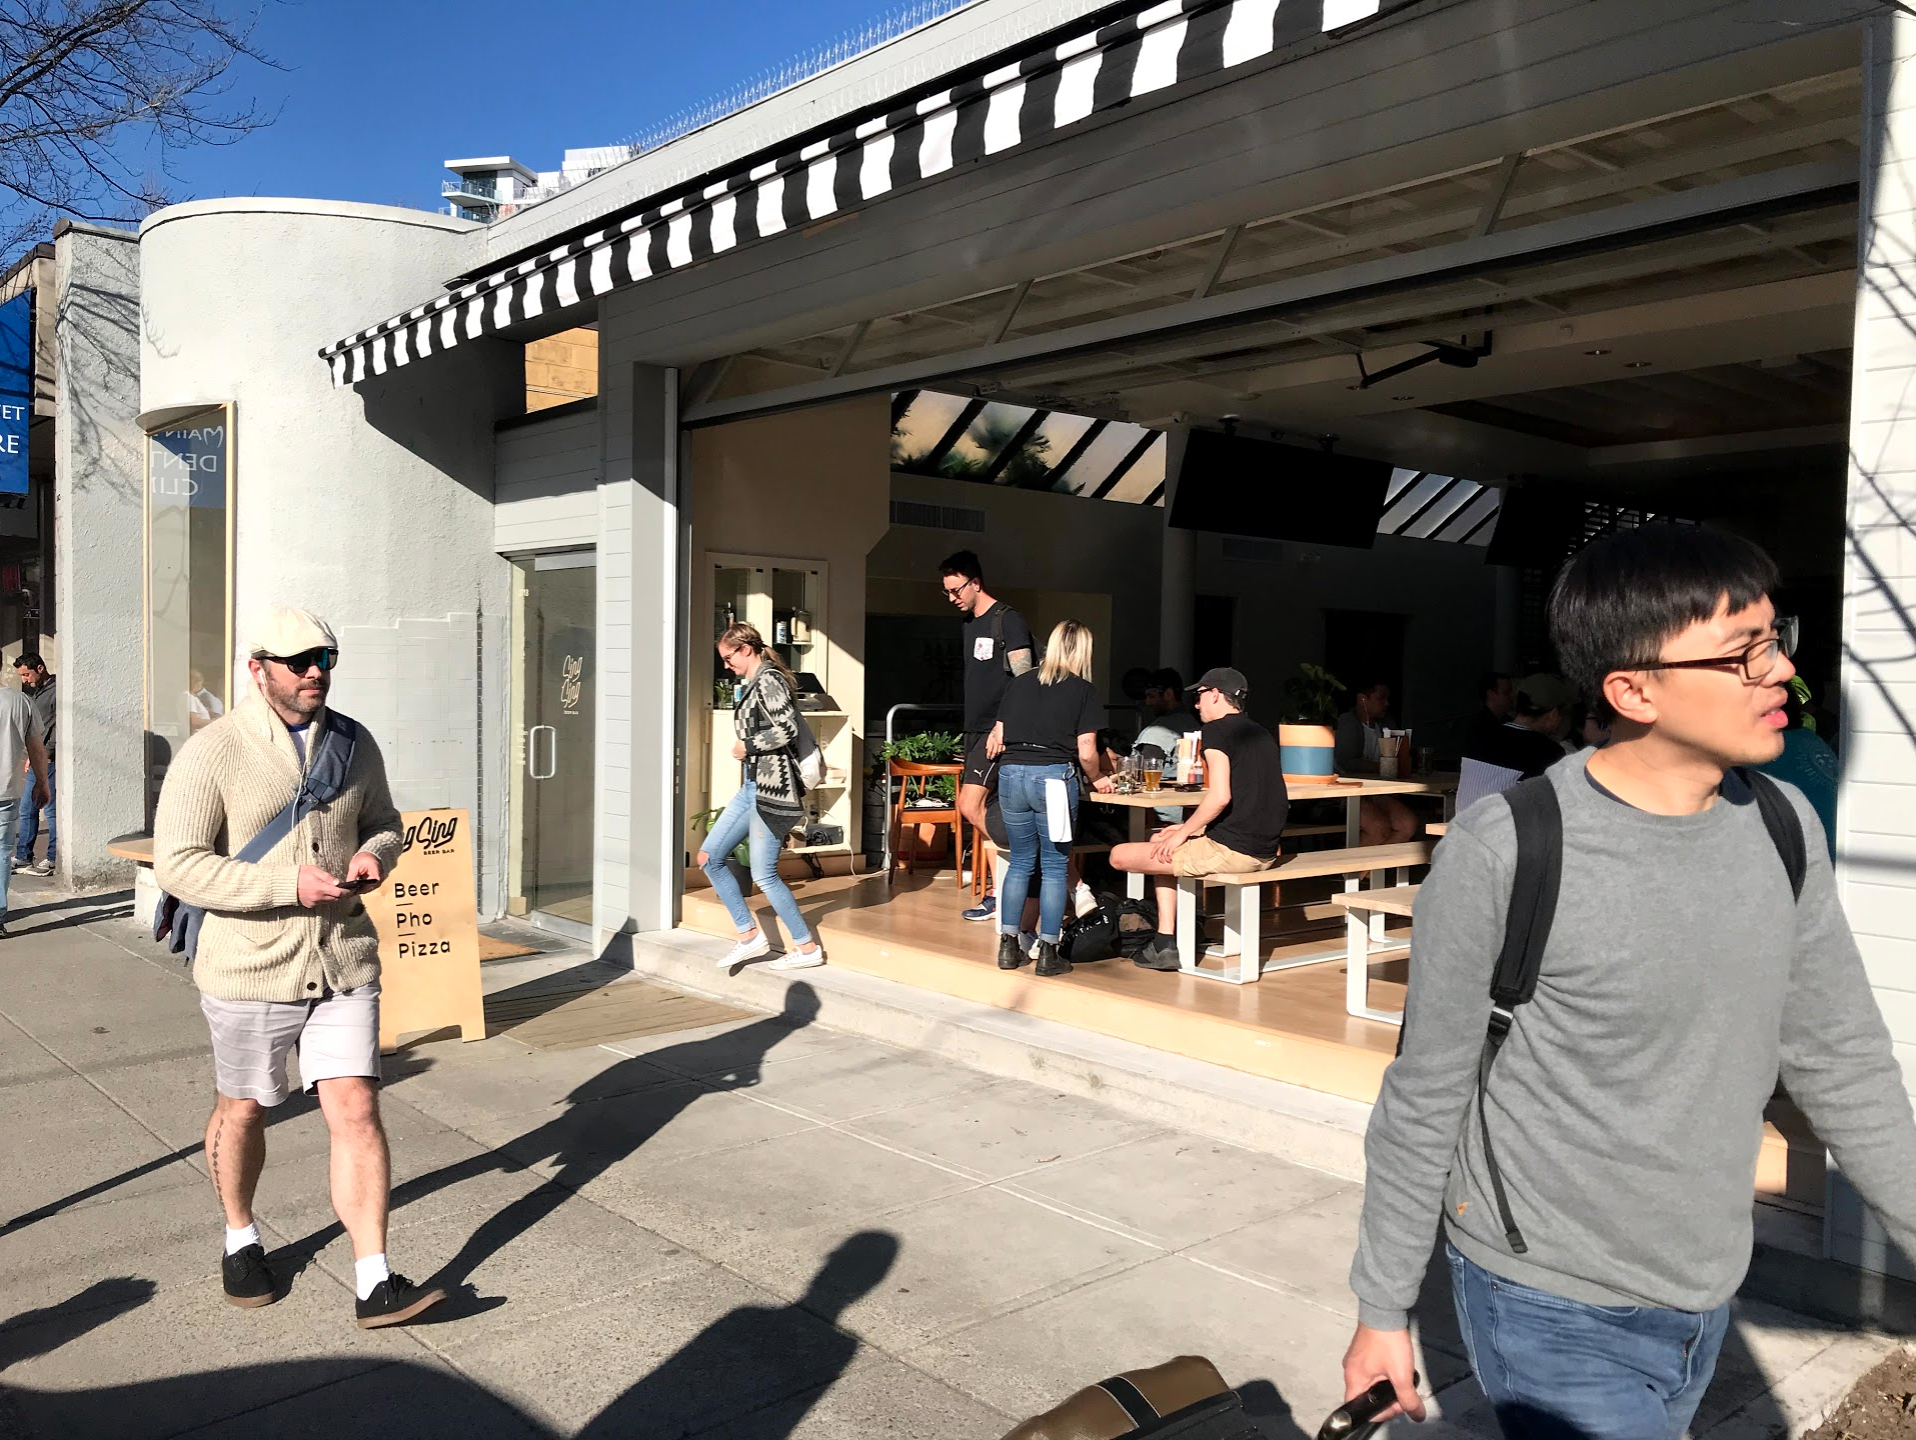 Sing Sing Beer Bar is a great spot for people watching and catching some afternoon rays…we certainly enjoyed their Happy Hour!